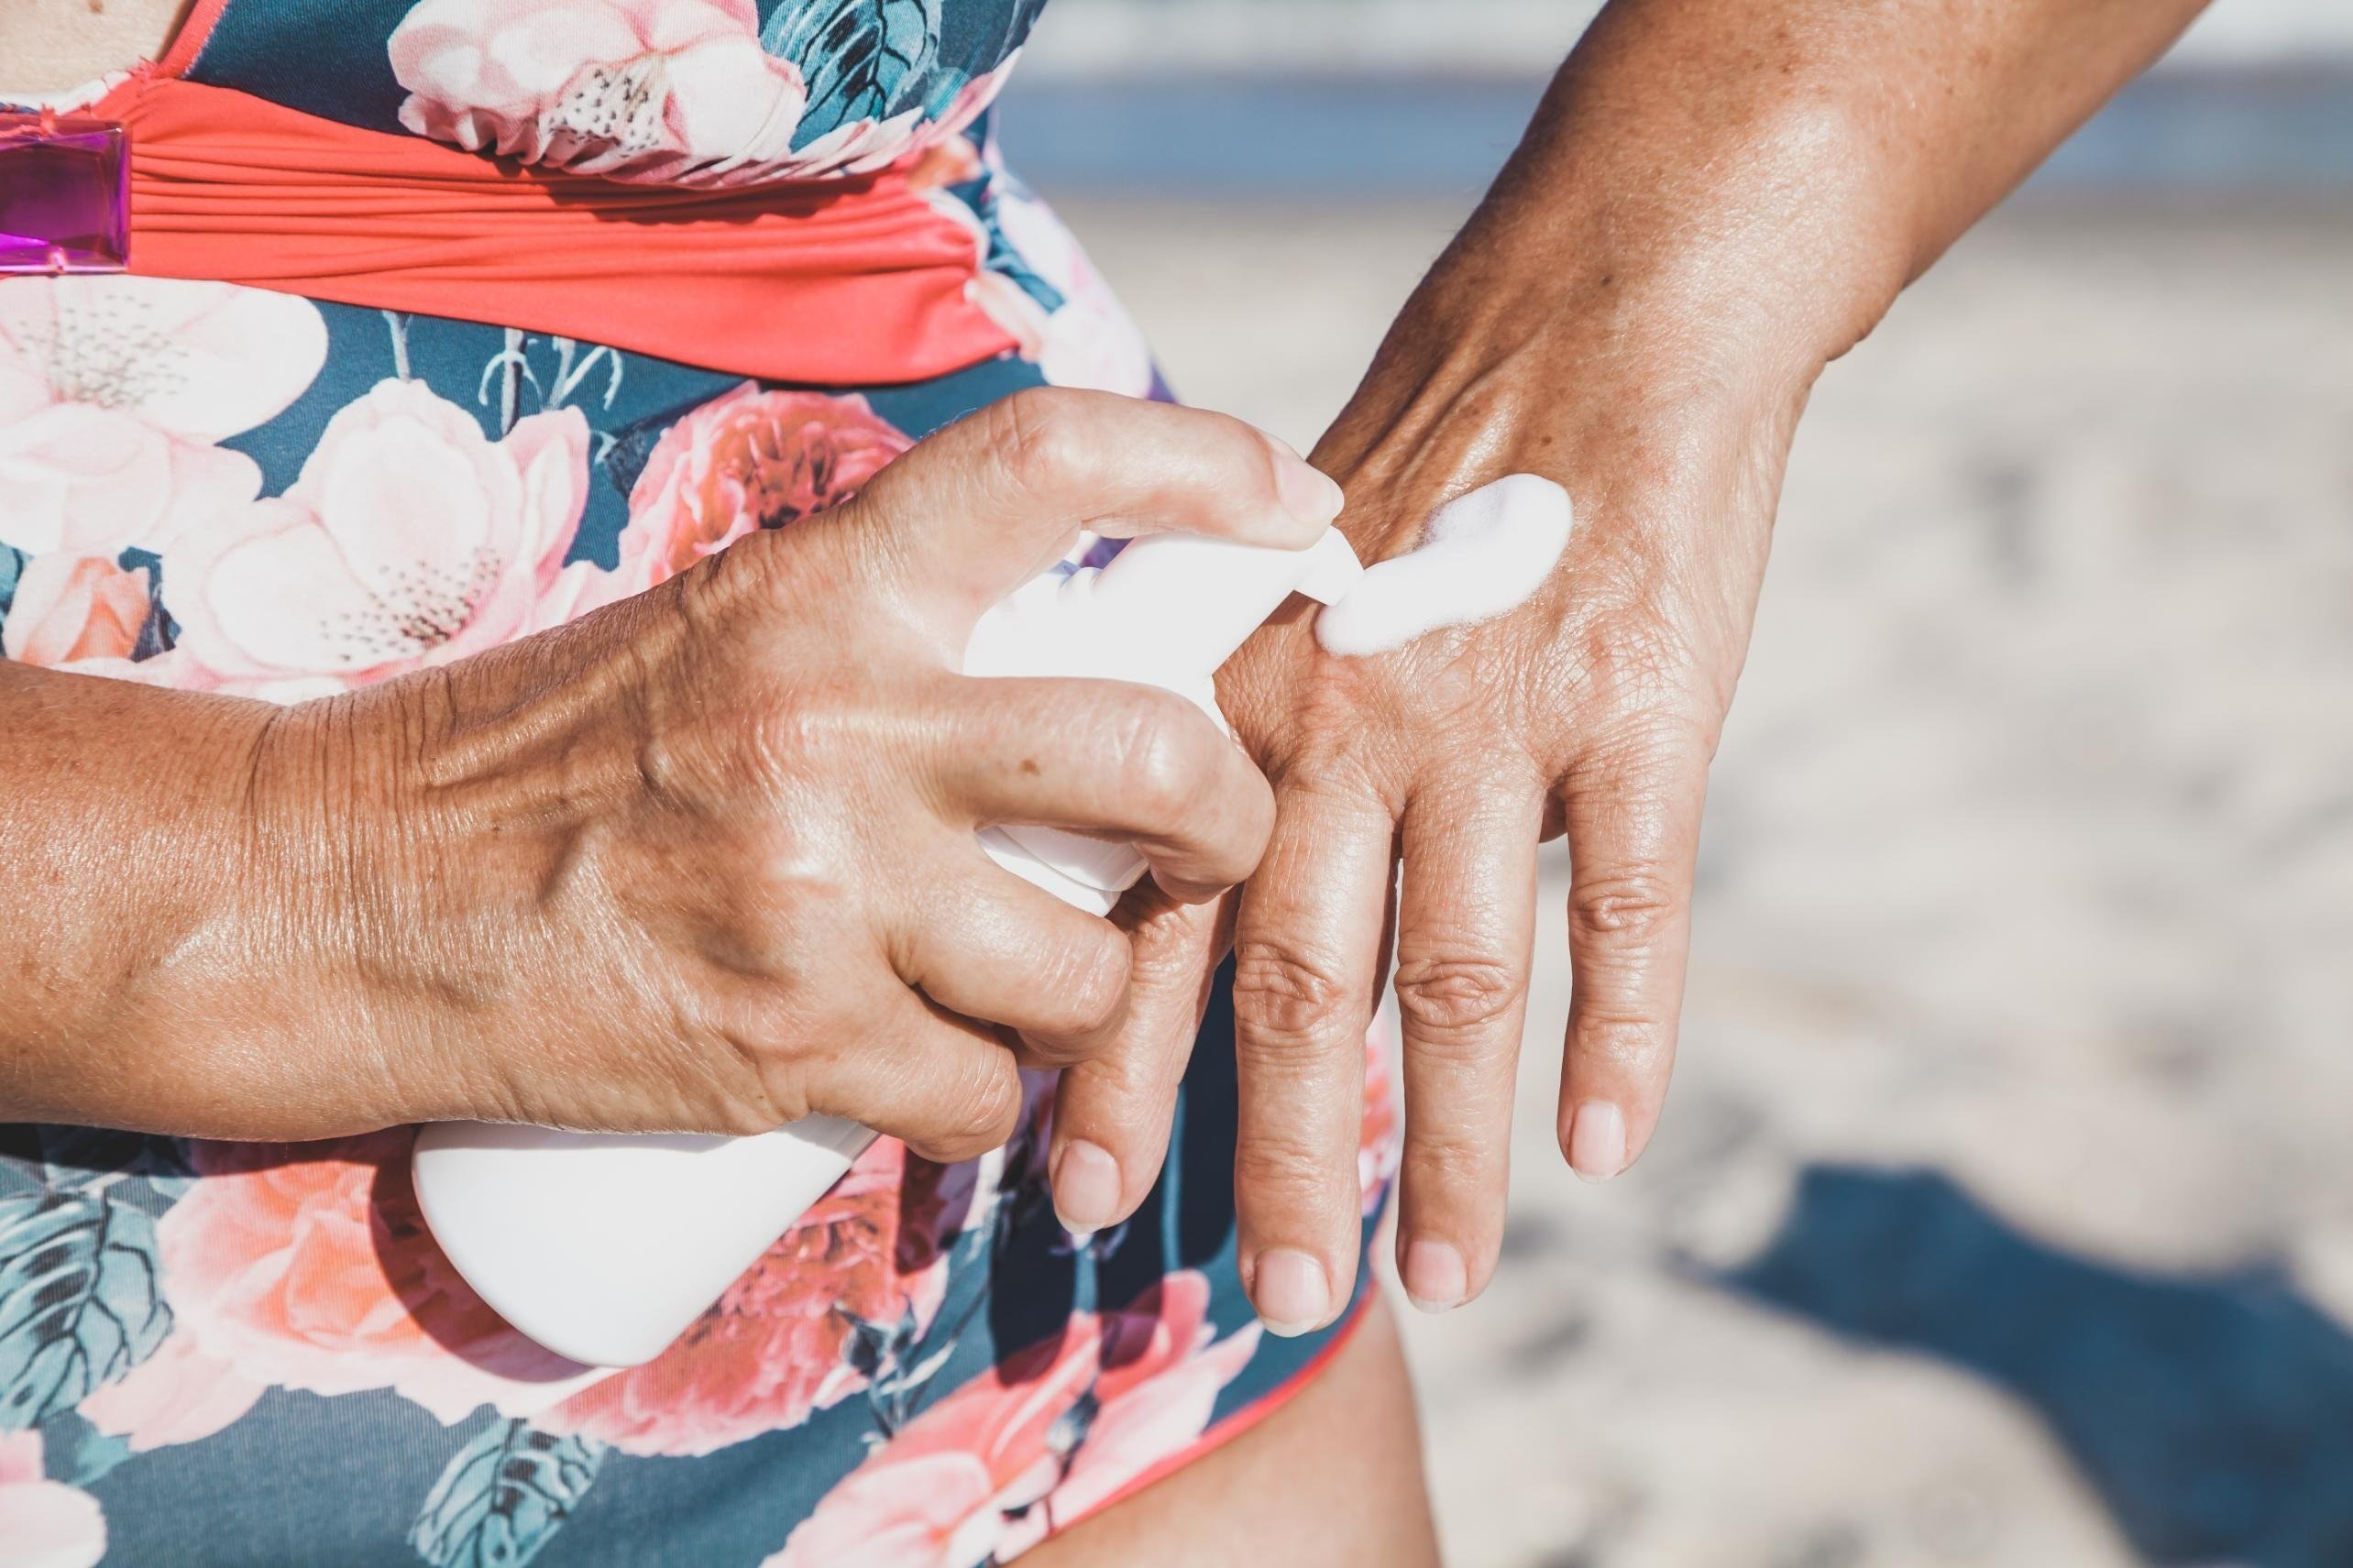 Sun protection is the single most important thing you can do at any age to keep skin healthy, says one expert.